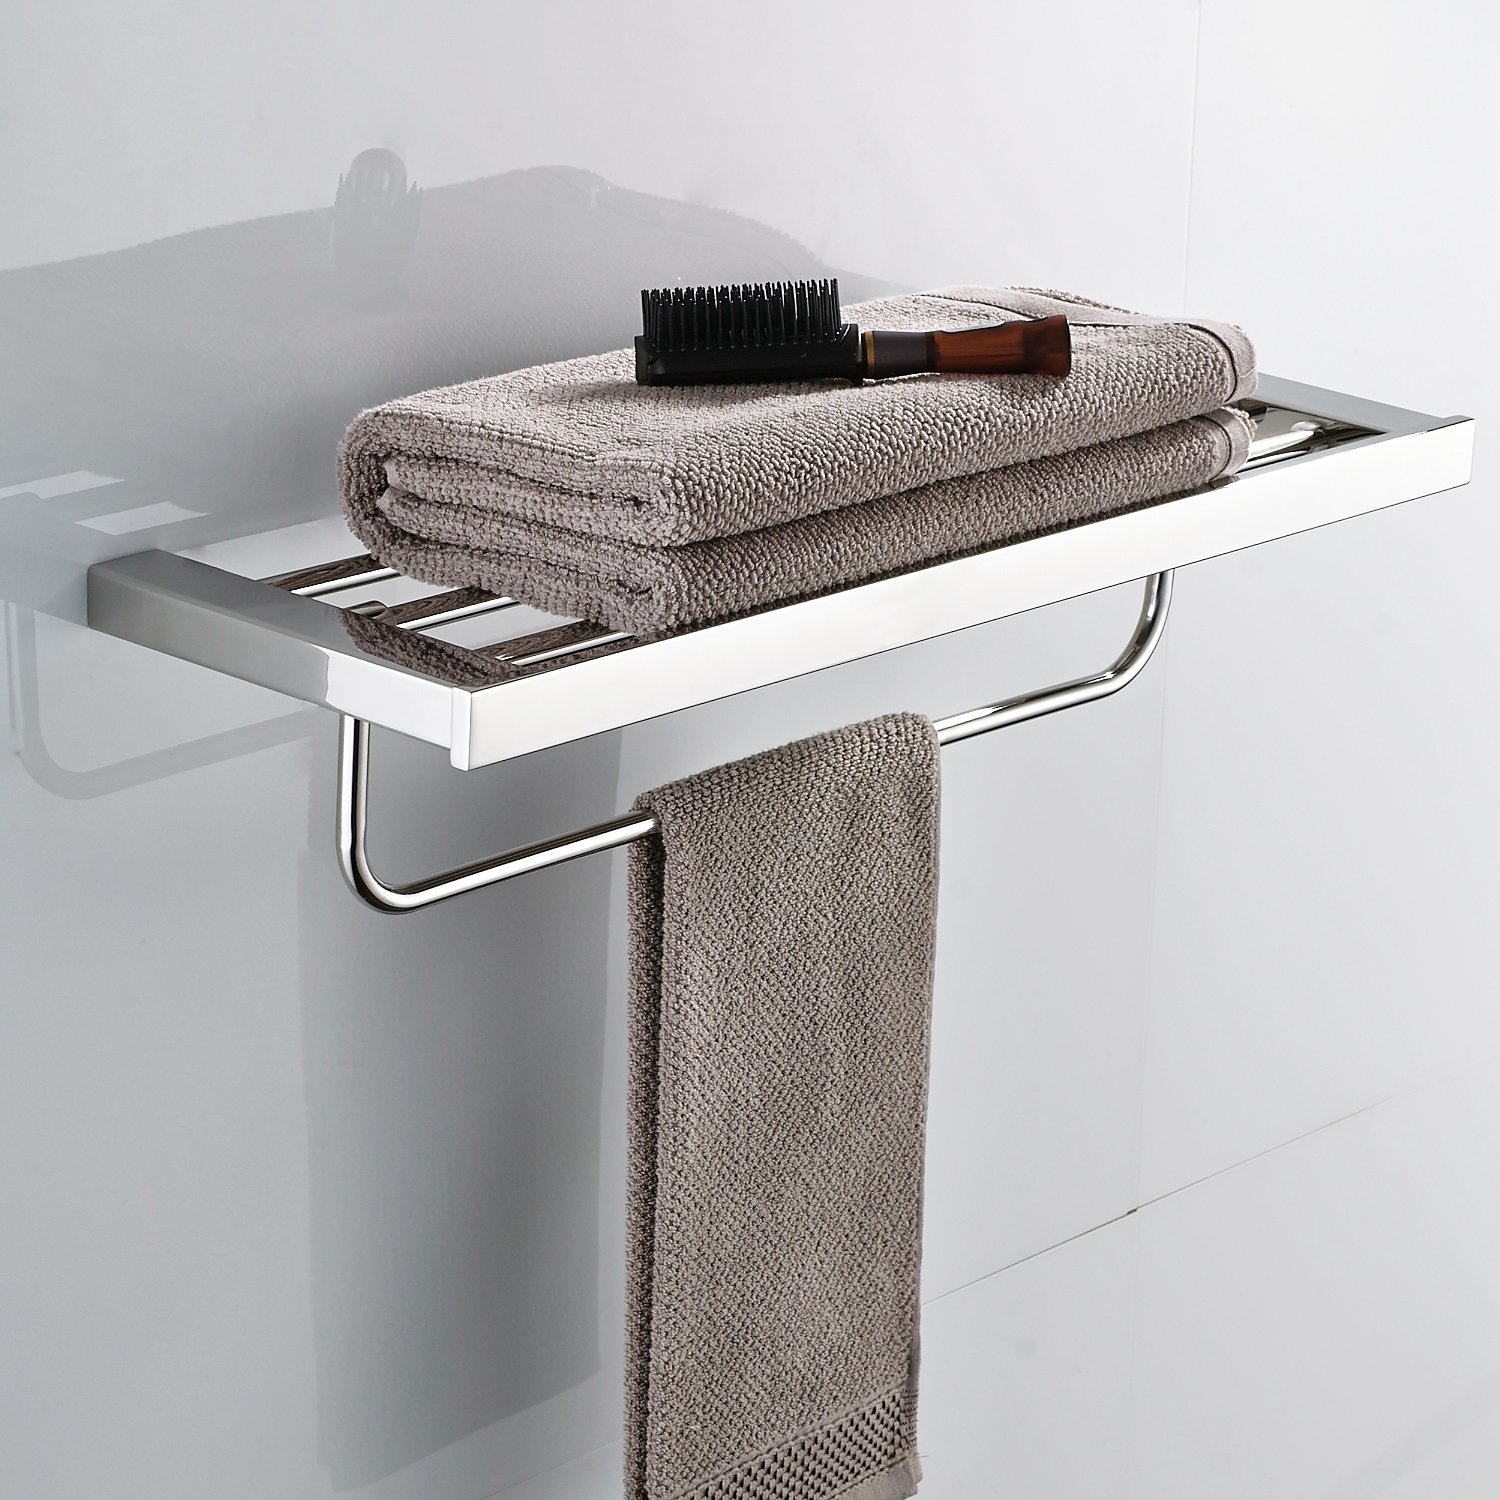 Bath Towel Shelf with Movable Bar 24 inch Stainless Steel Bathroom Décor Rack Hotel Style Invisible Wall Mount Hanger Washcloth Holder Rack Hardware Included Polished Chrome MARMOLUX ACC